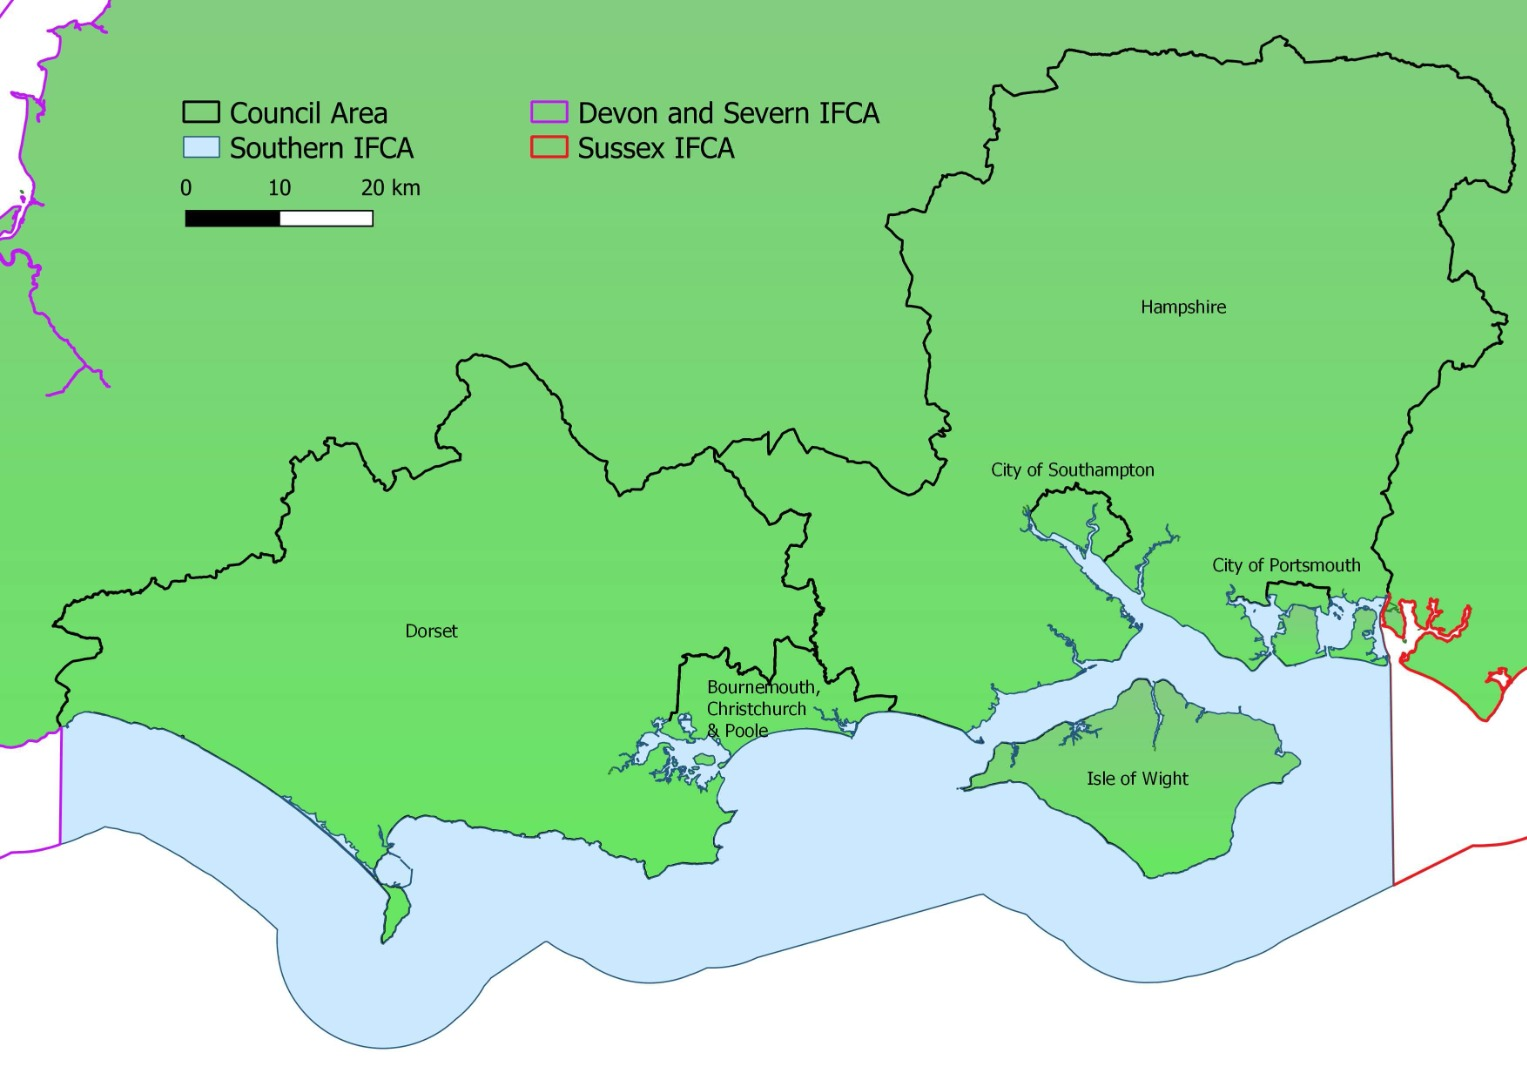 Southern IFCA | SIFCA | Covered District Map | South Coast of England